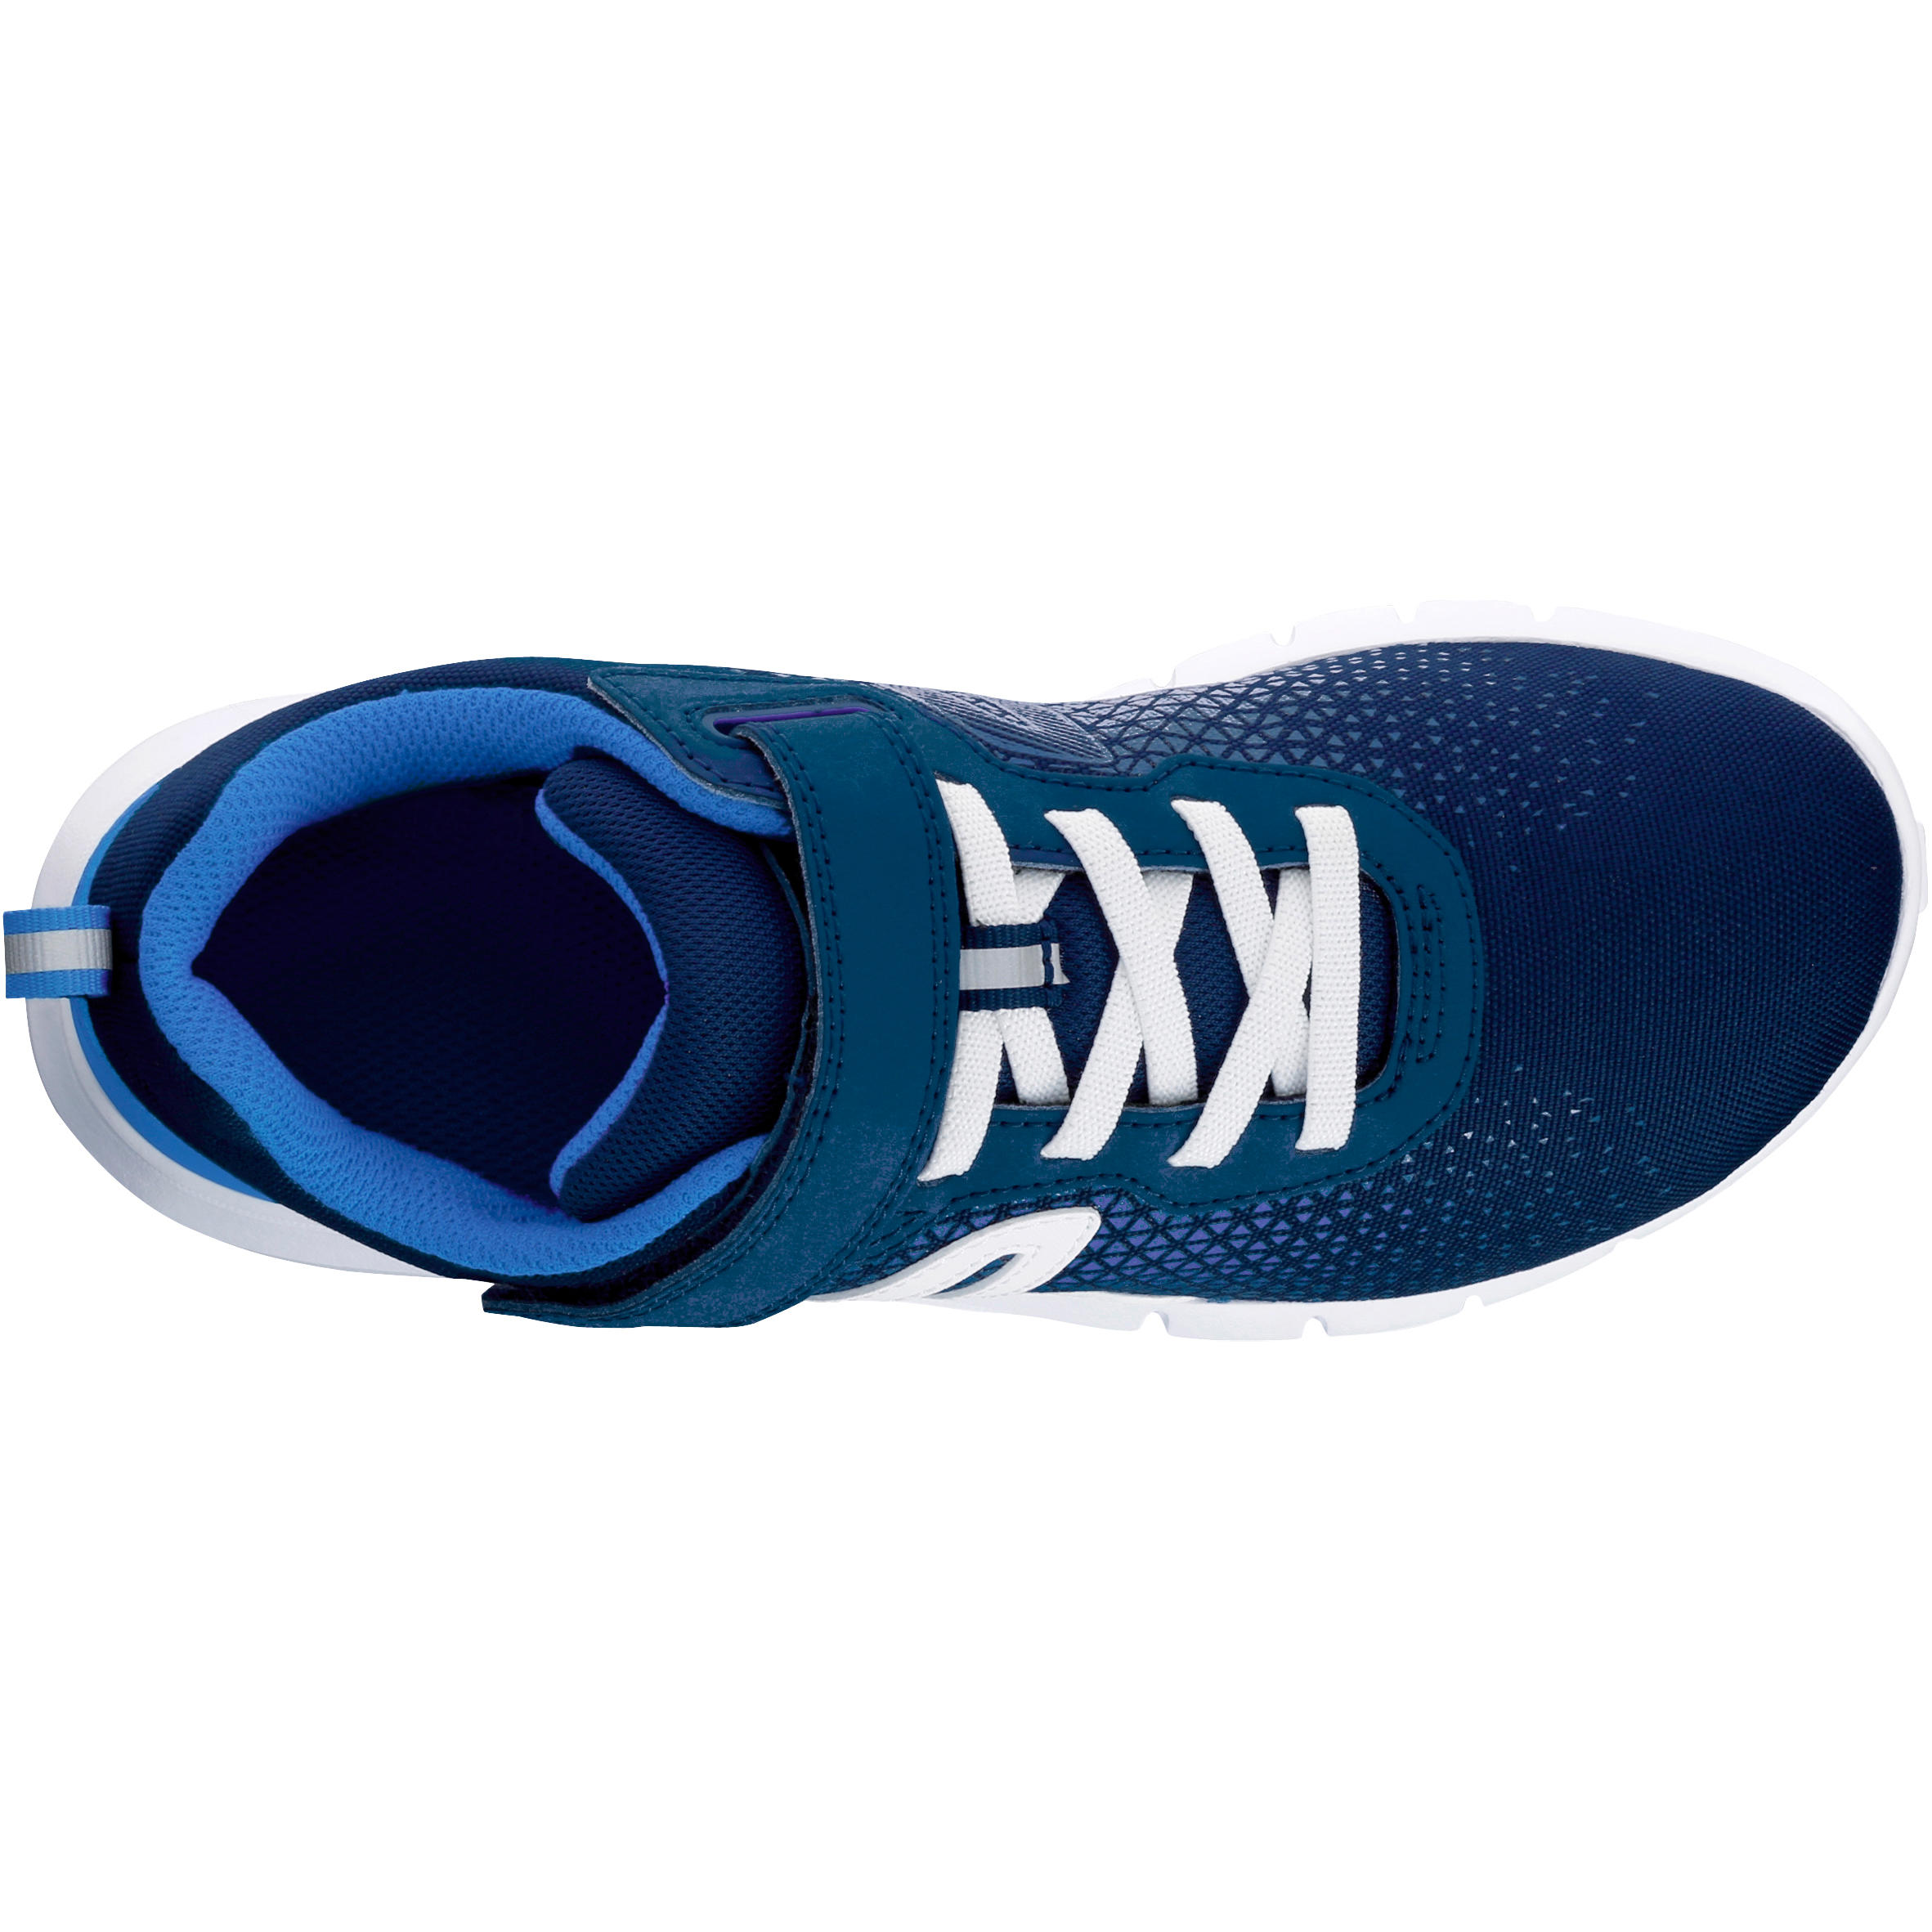 Walking shoes for kids Soft 140 - navy/white